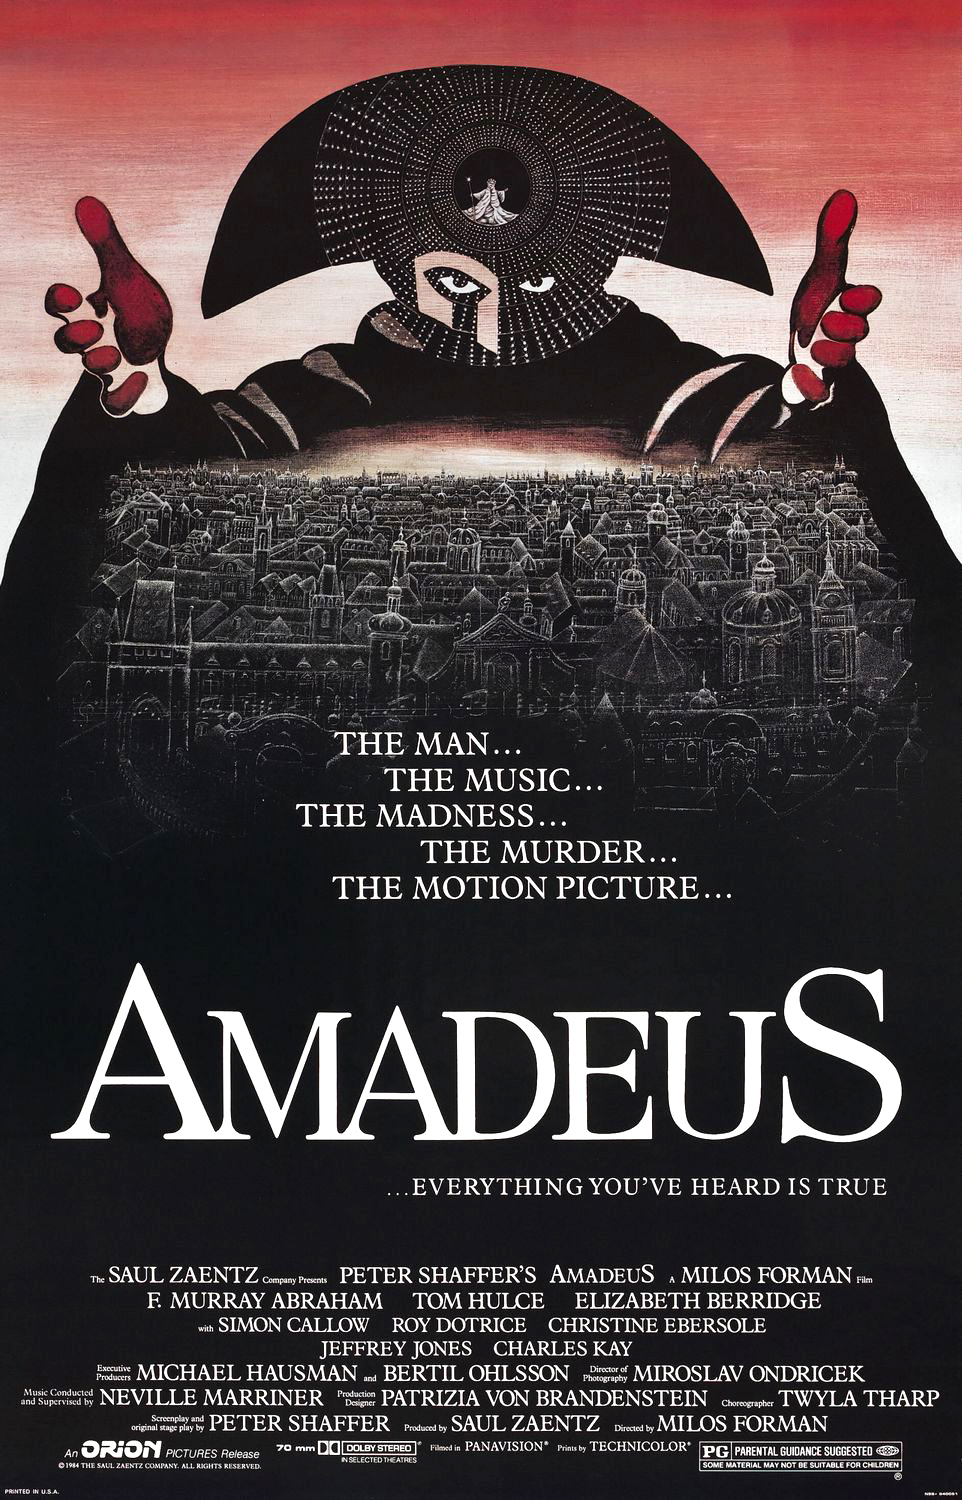 Amadeus (Academy Awards Winner